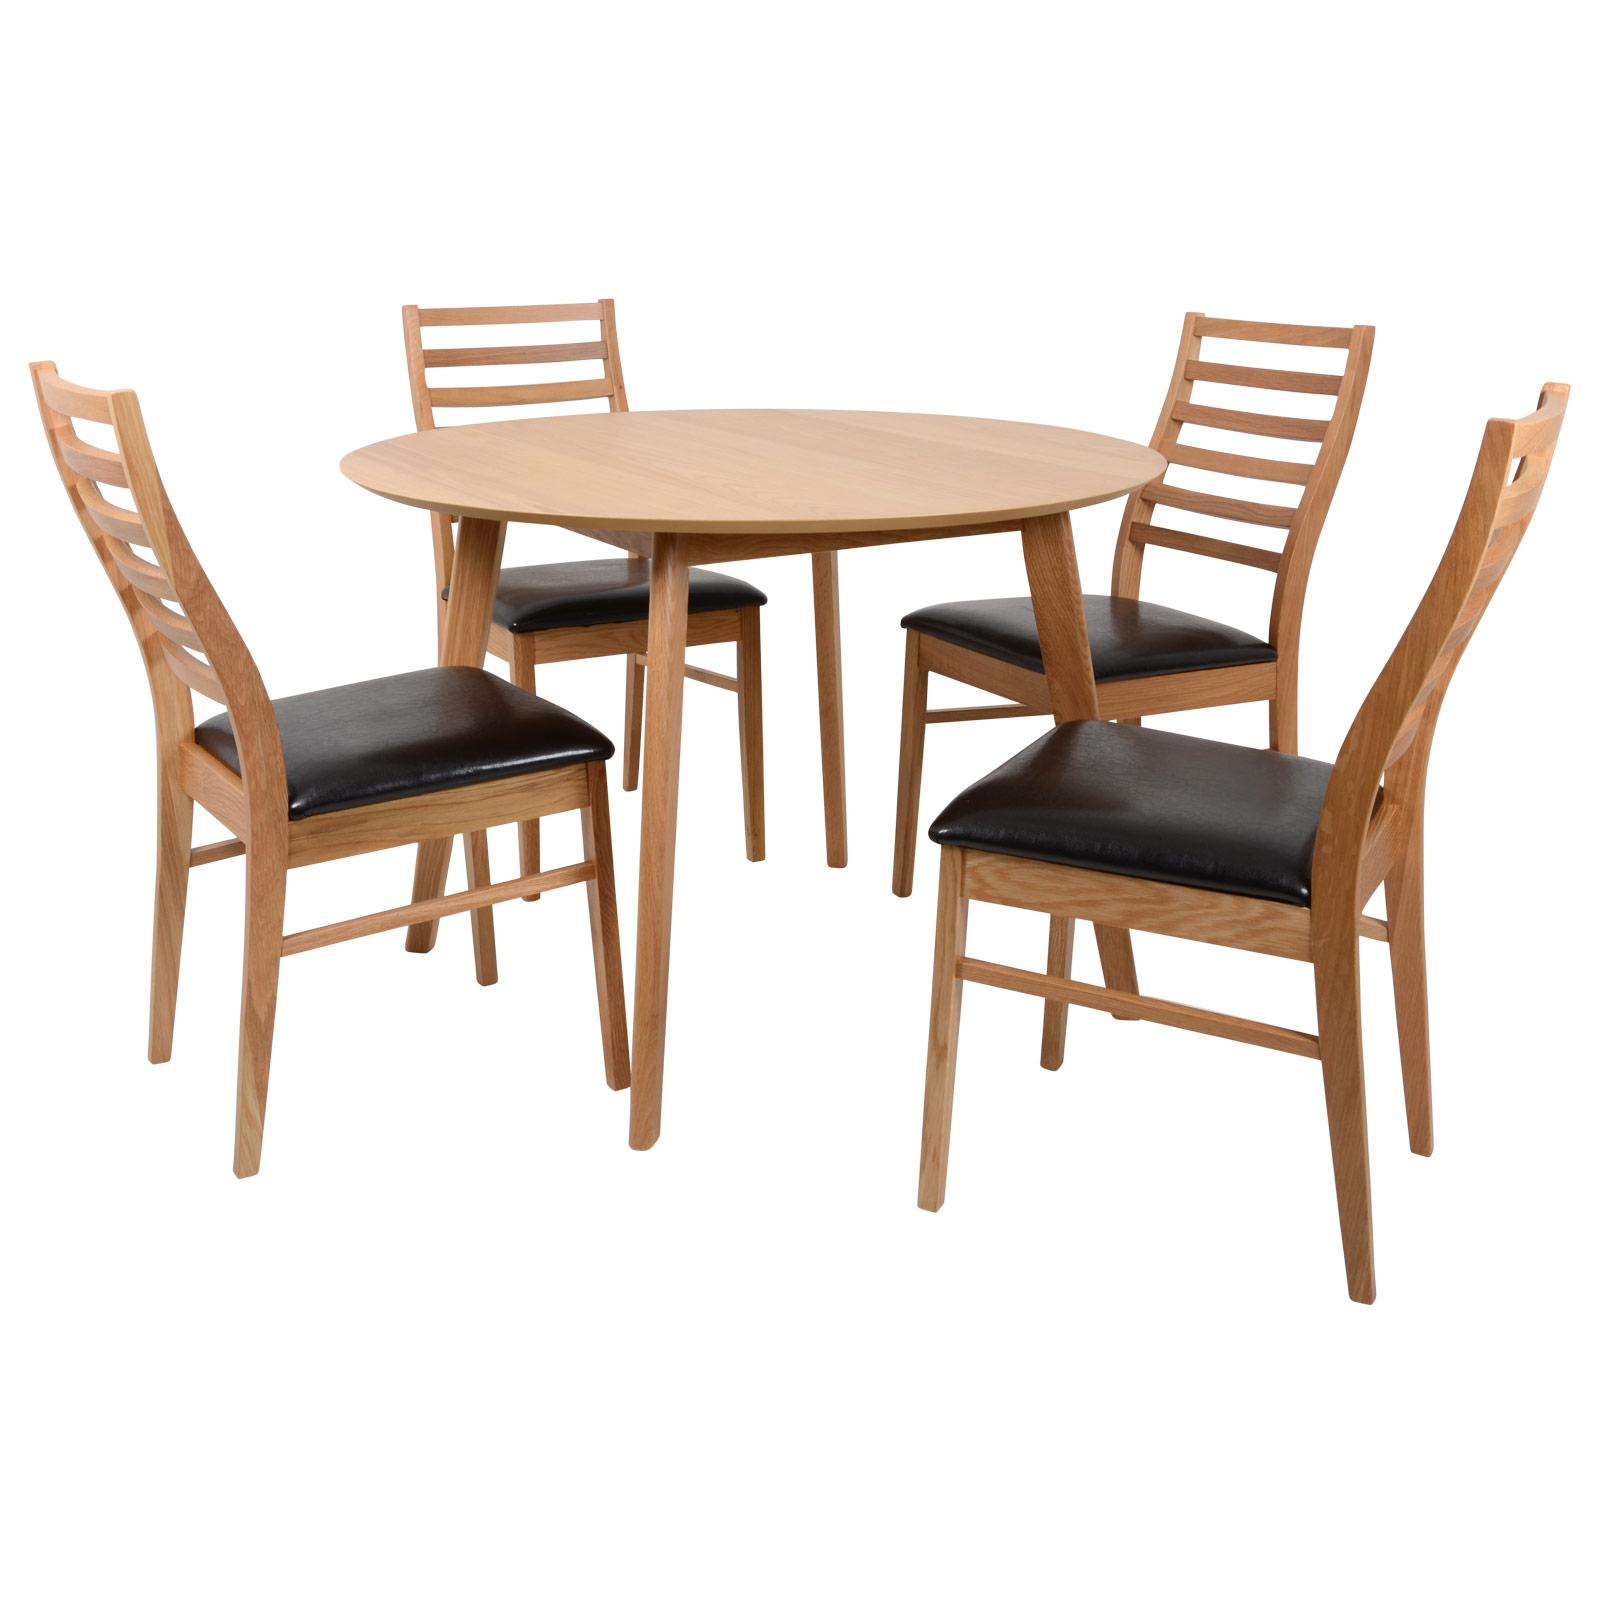 dining set round oak table 4 matching wooden chairs furniture ebay